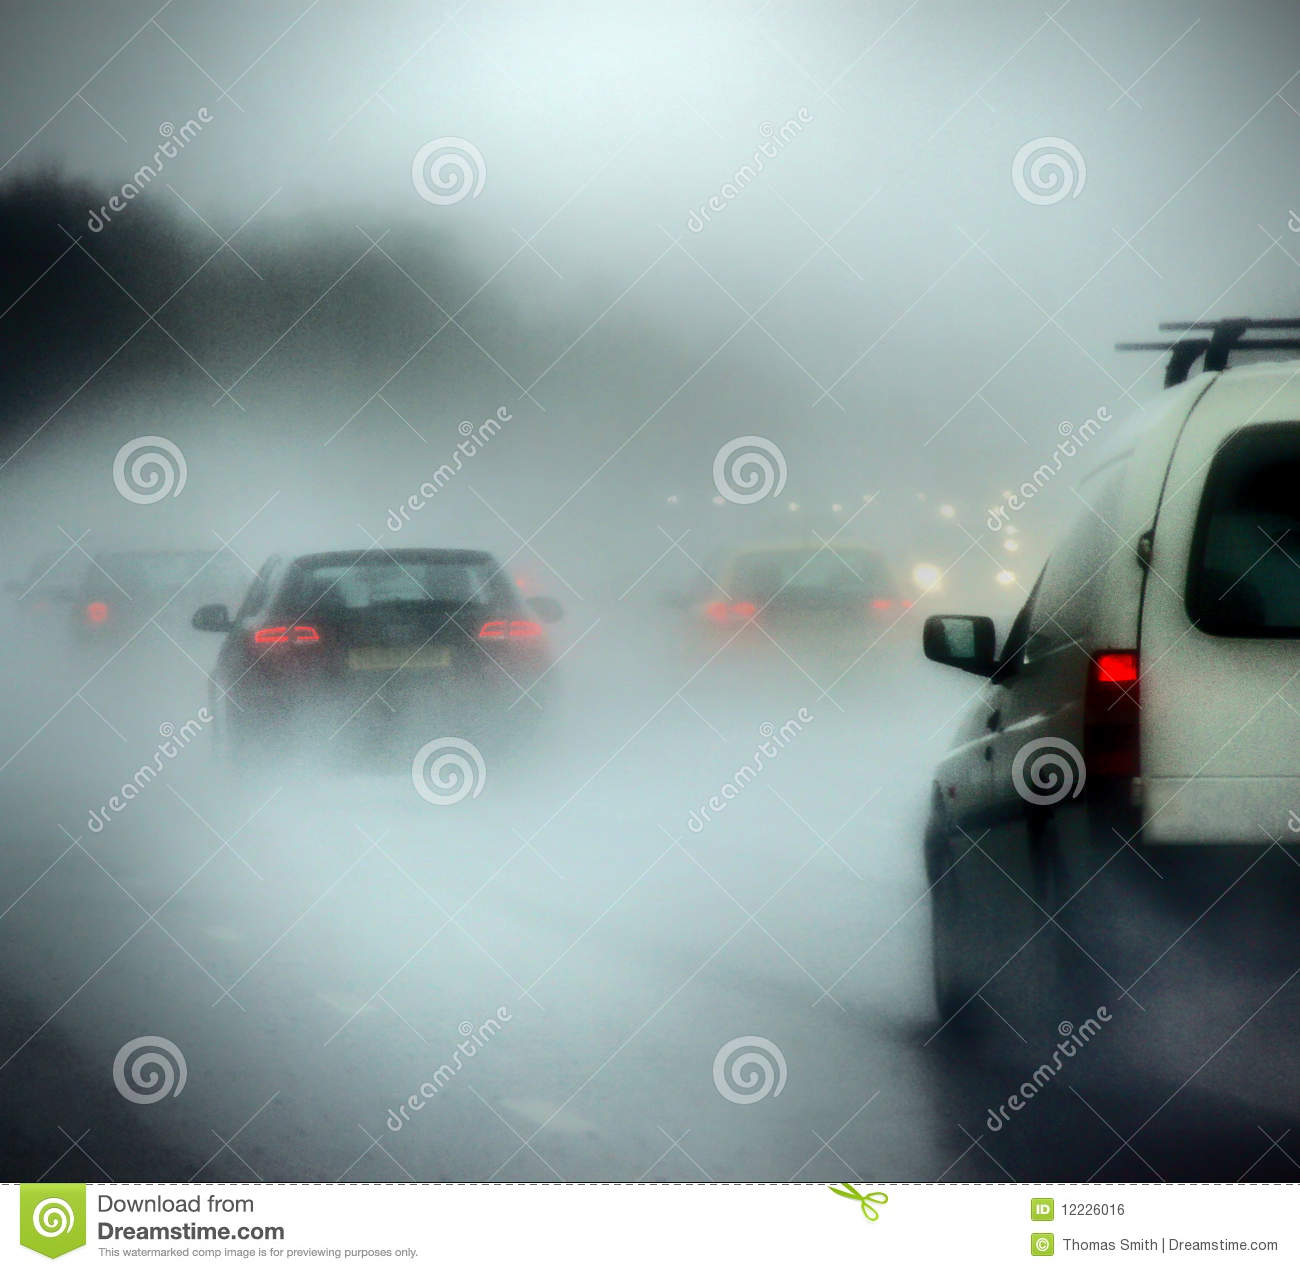 Royalty Free Stock Image: Cars on a road in heavy rain and fog